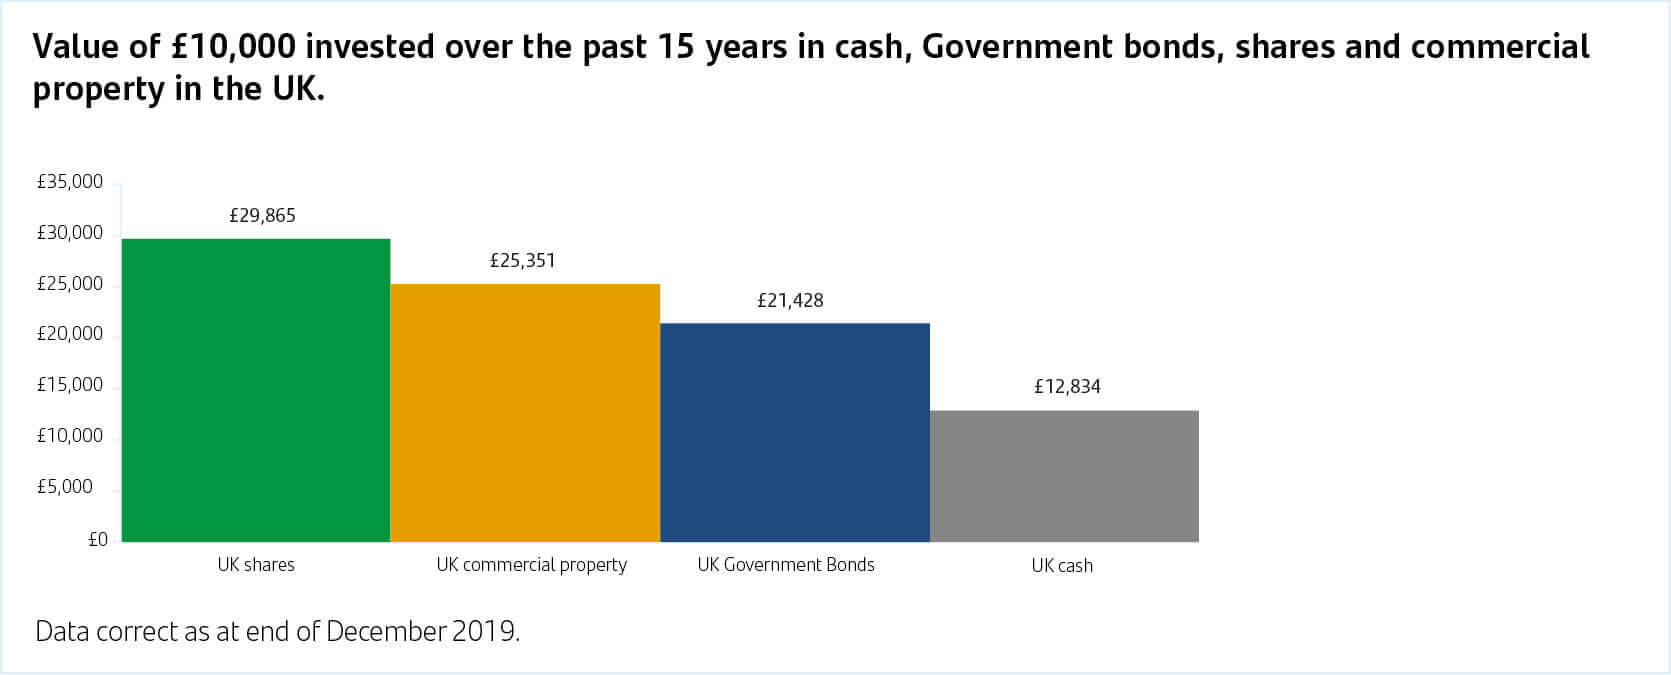 Government bonds, shares, cash and commercial property